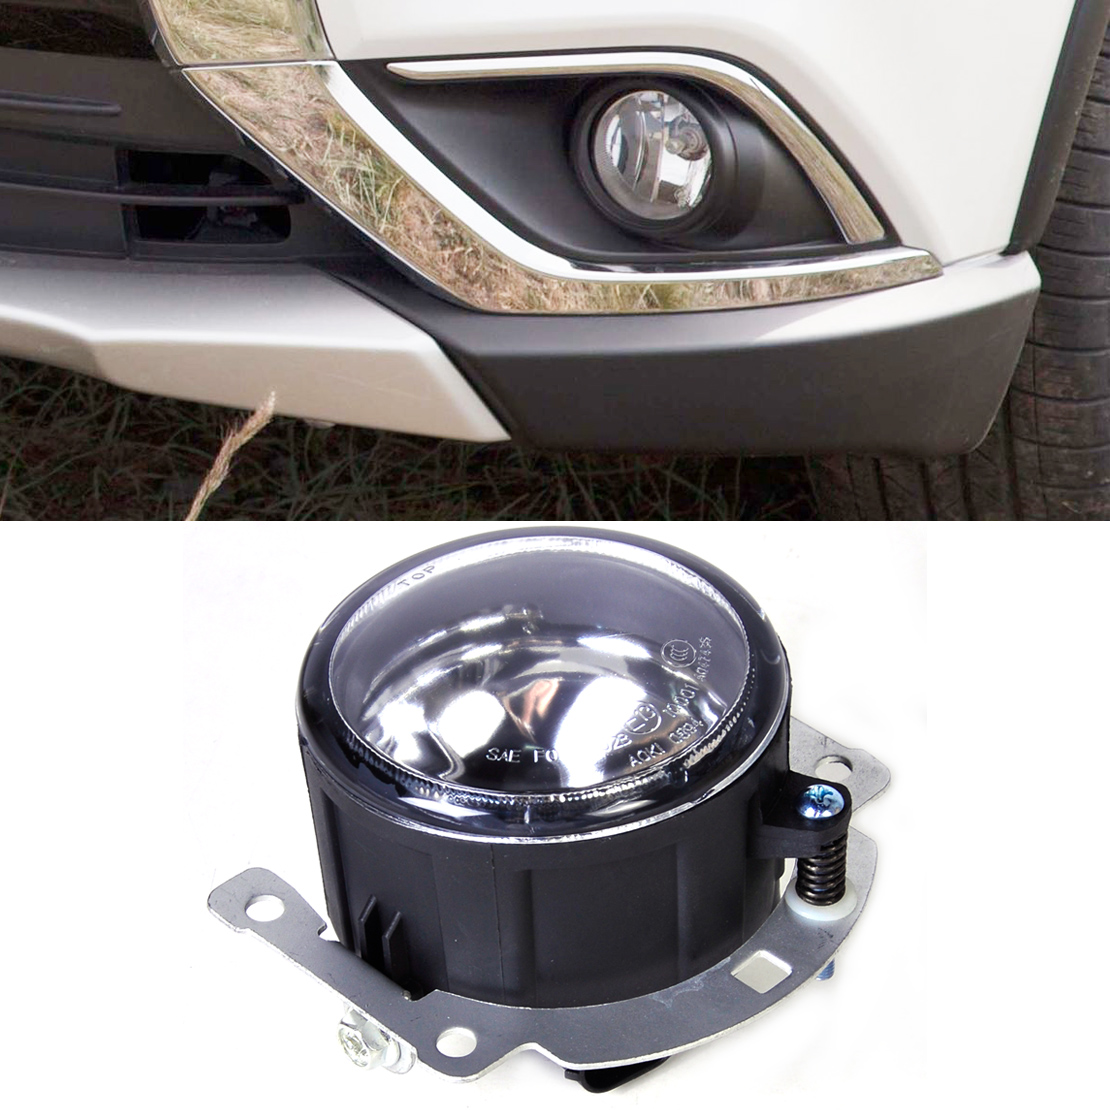 ФОТО New 12V 55W 1PC Left=Right Front Fog lamp Light 8321A467 SL870-1 Fit for Mitsubishi Outlander ASX RVR